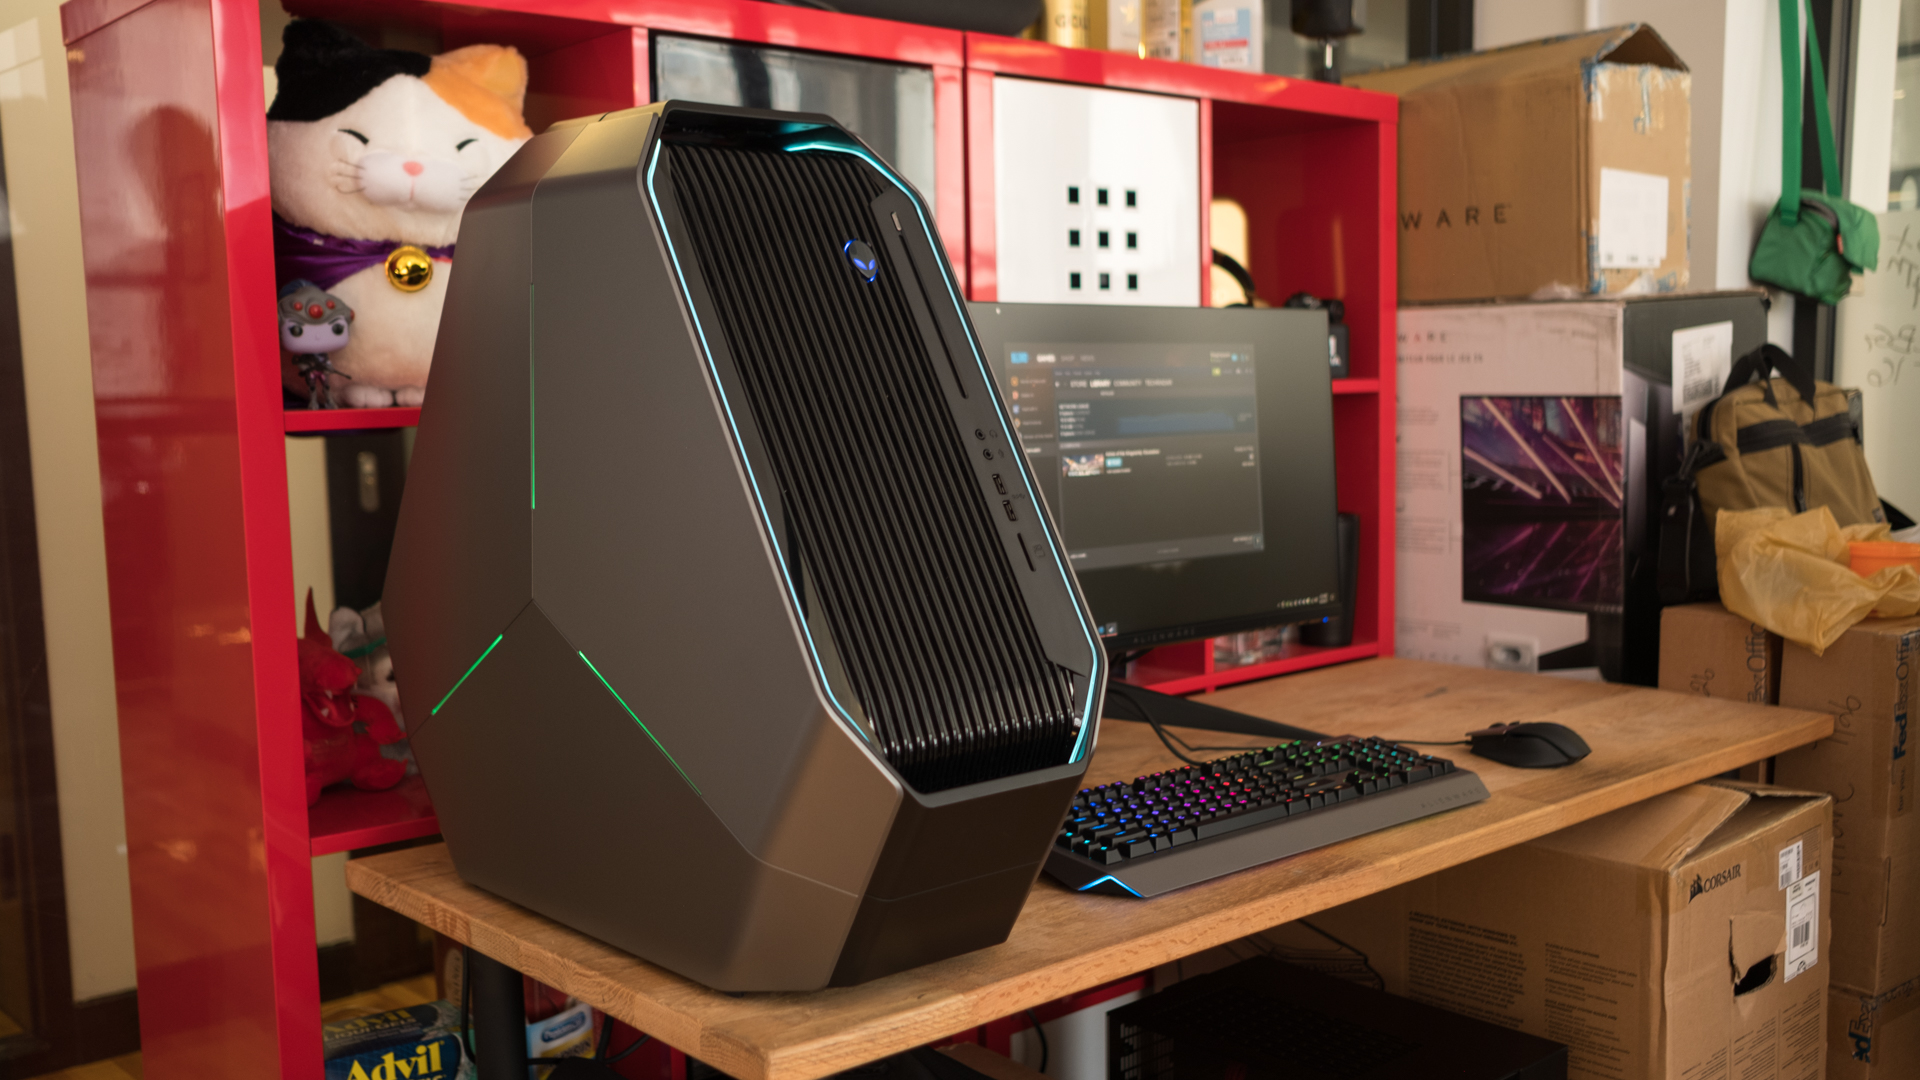 The best gaming PC 2018: 10 of the top gaming desktops you can buy | Computing, ONLY infoTech